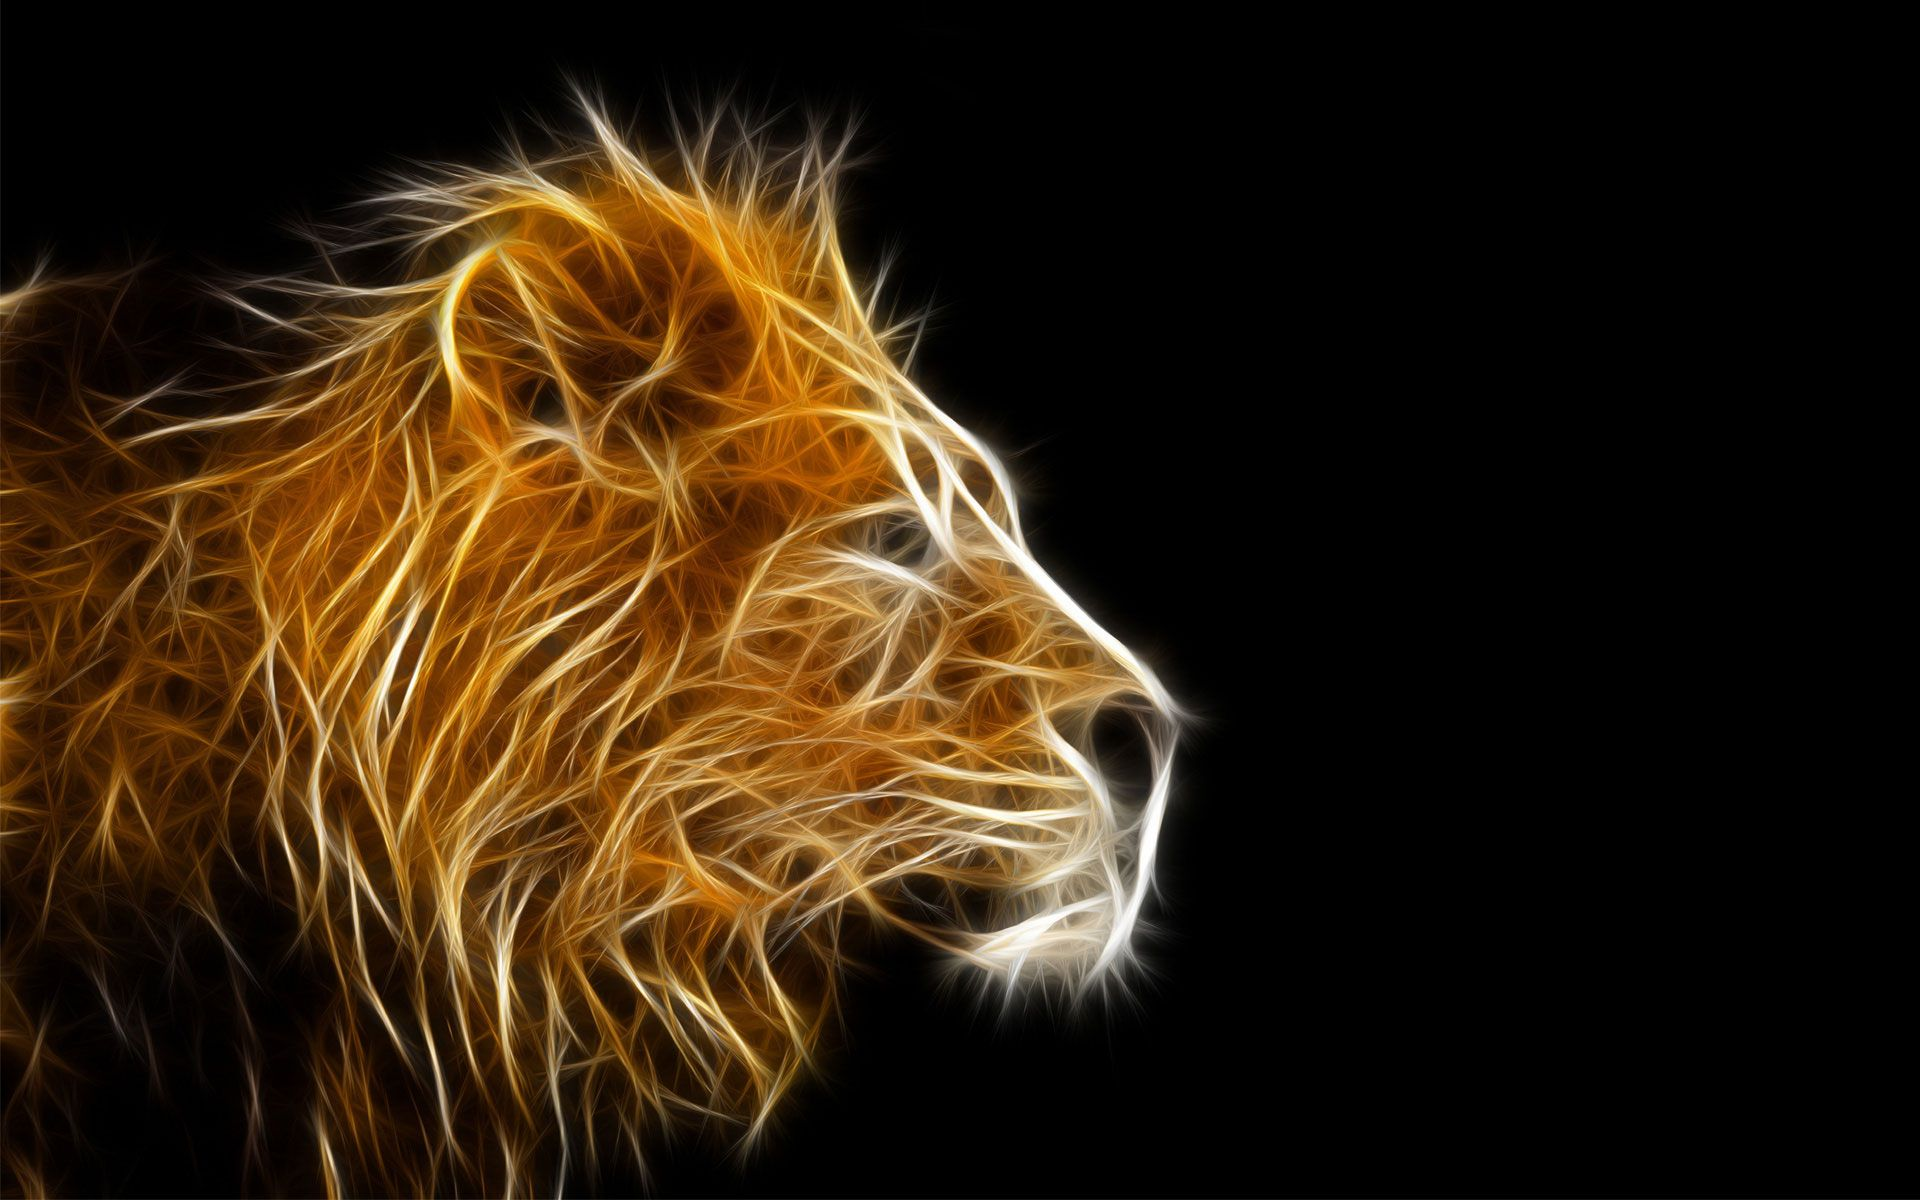 Angry Lion Wallpapers Full HD for Desktop Background Wallpaper